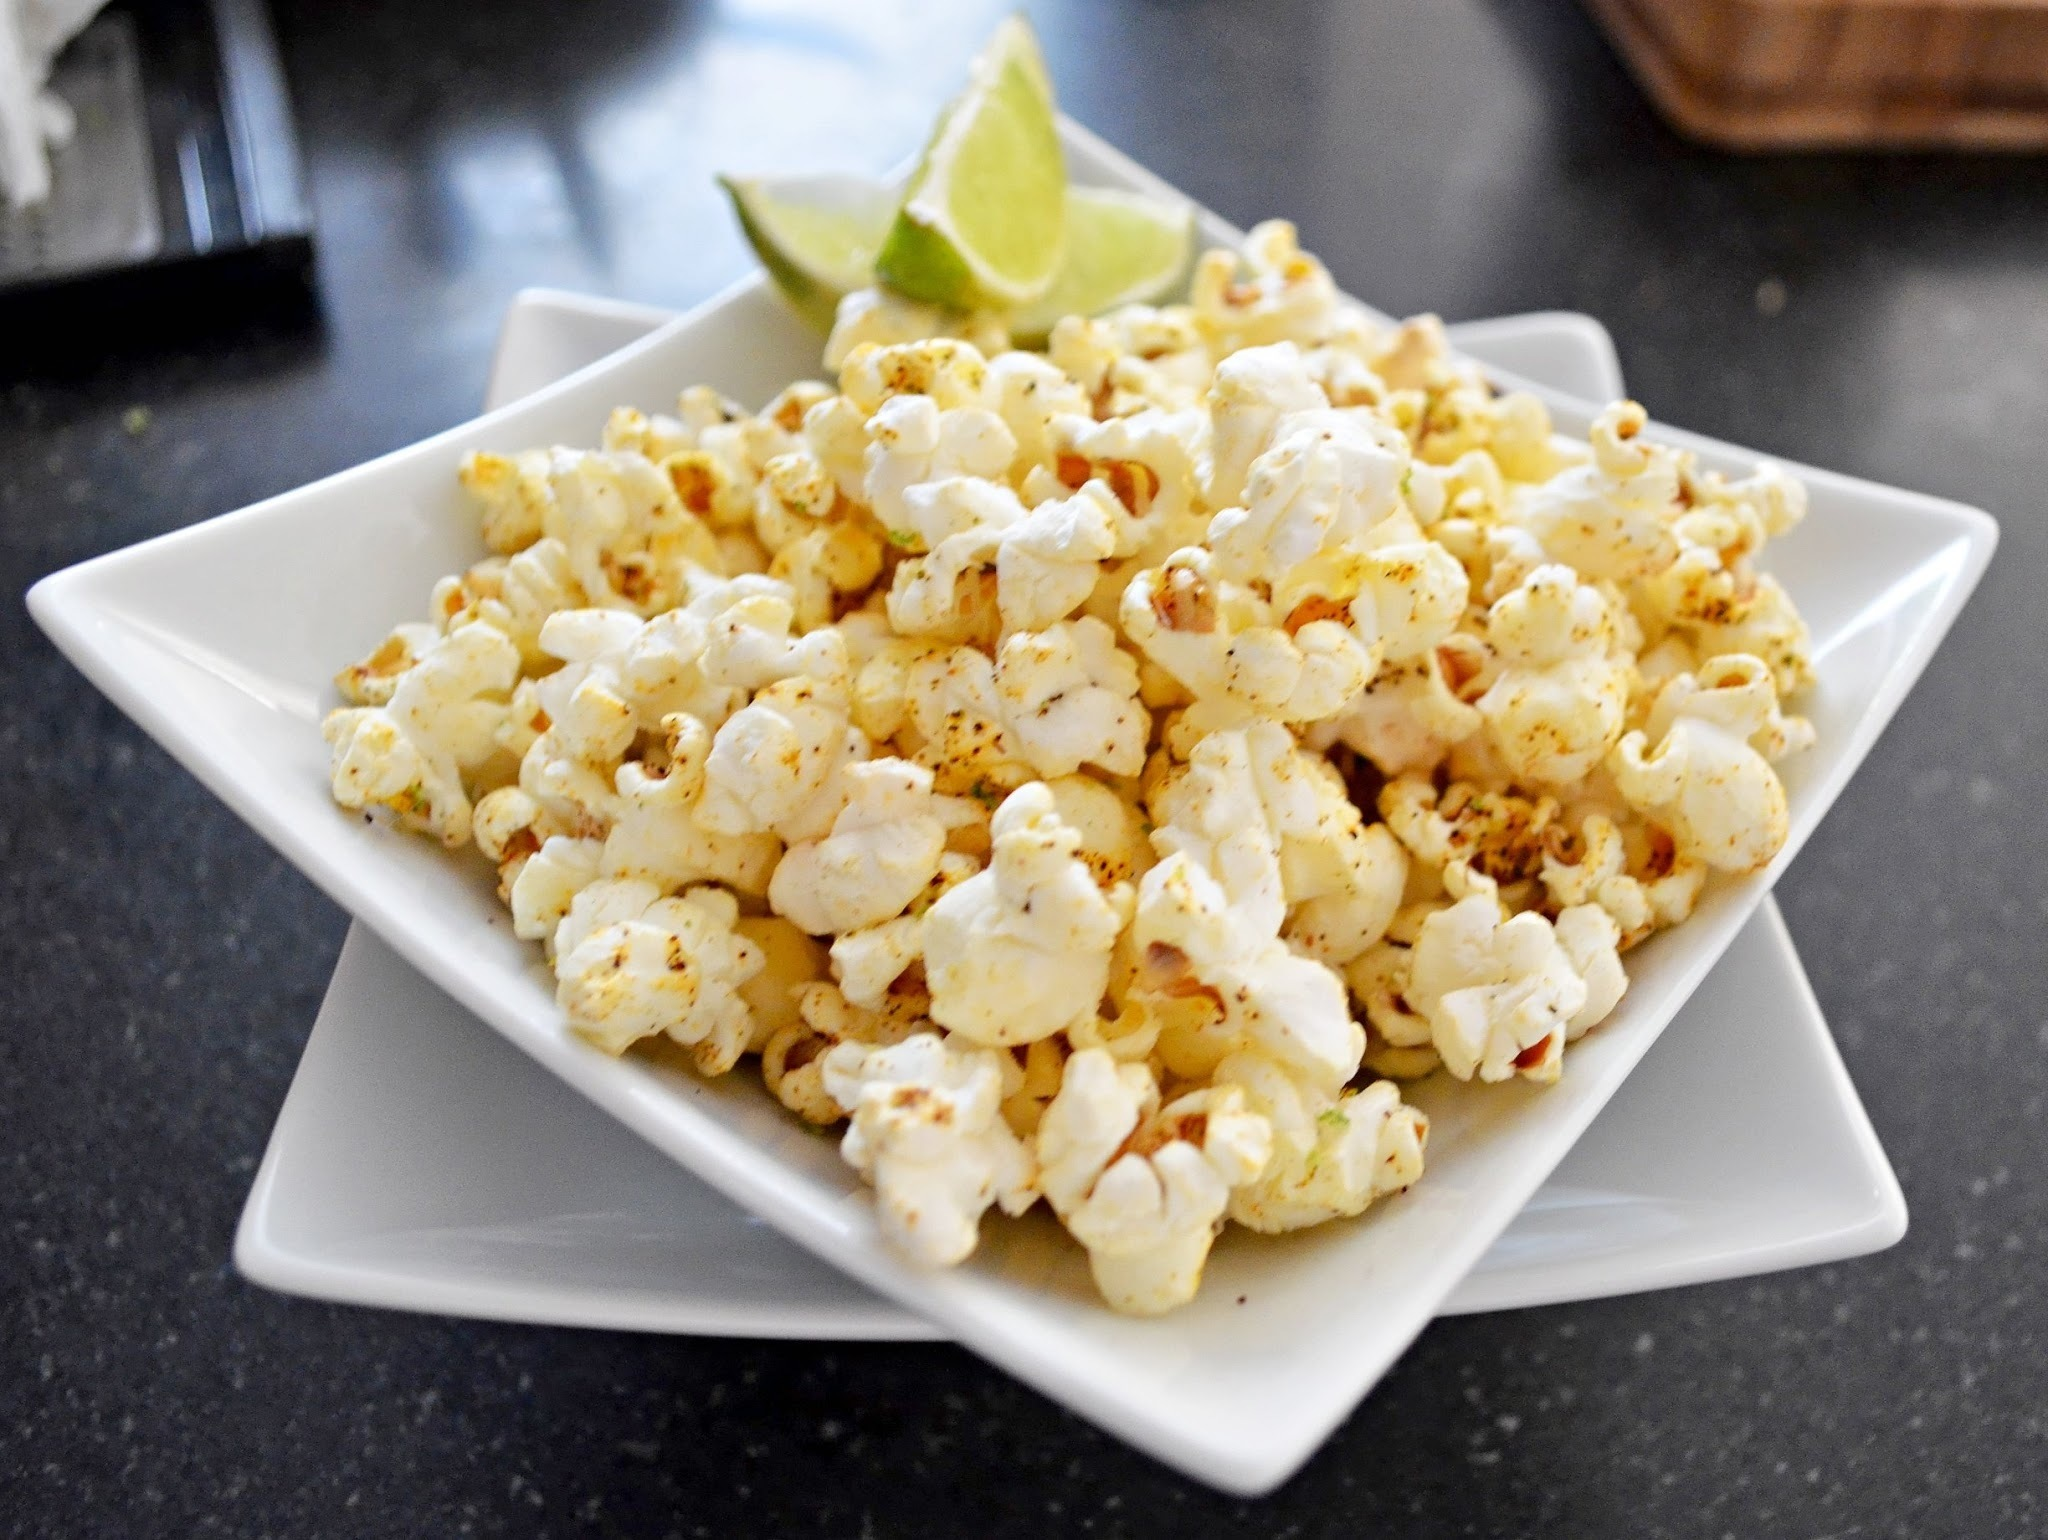 Recipe Redux: Chili Lime Popcorn